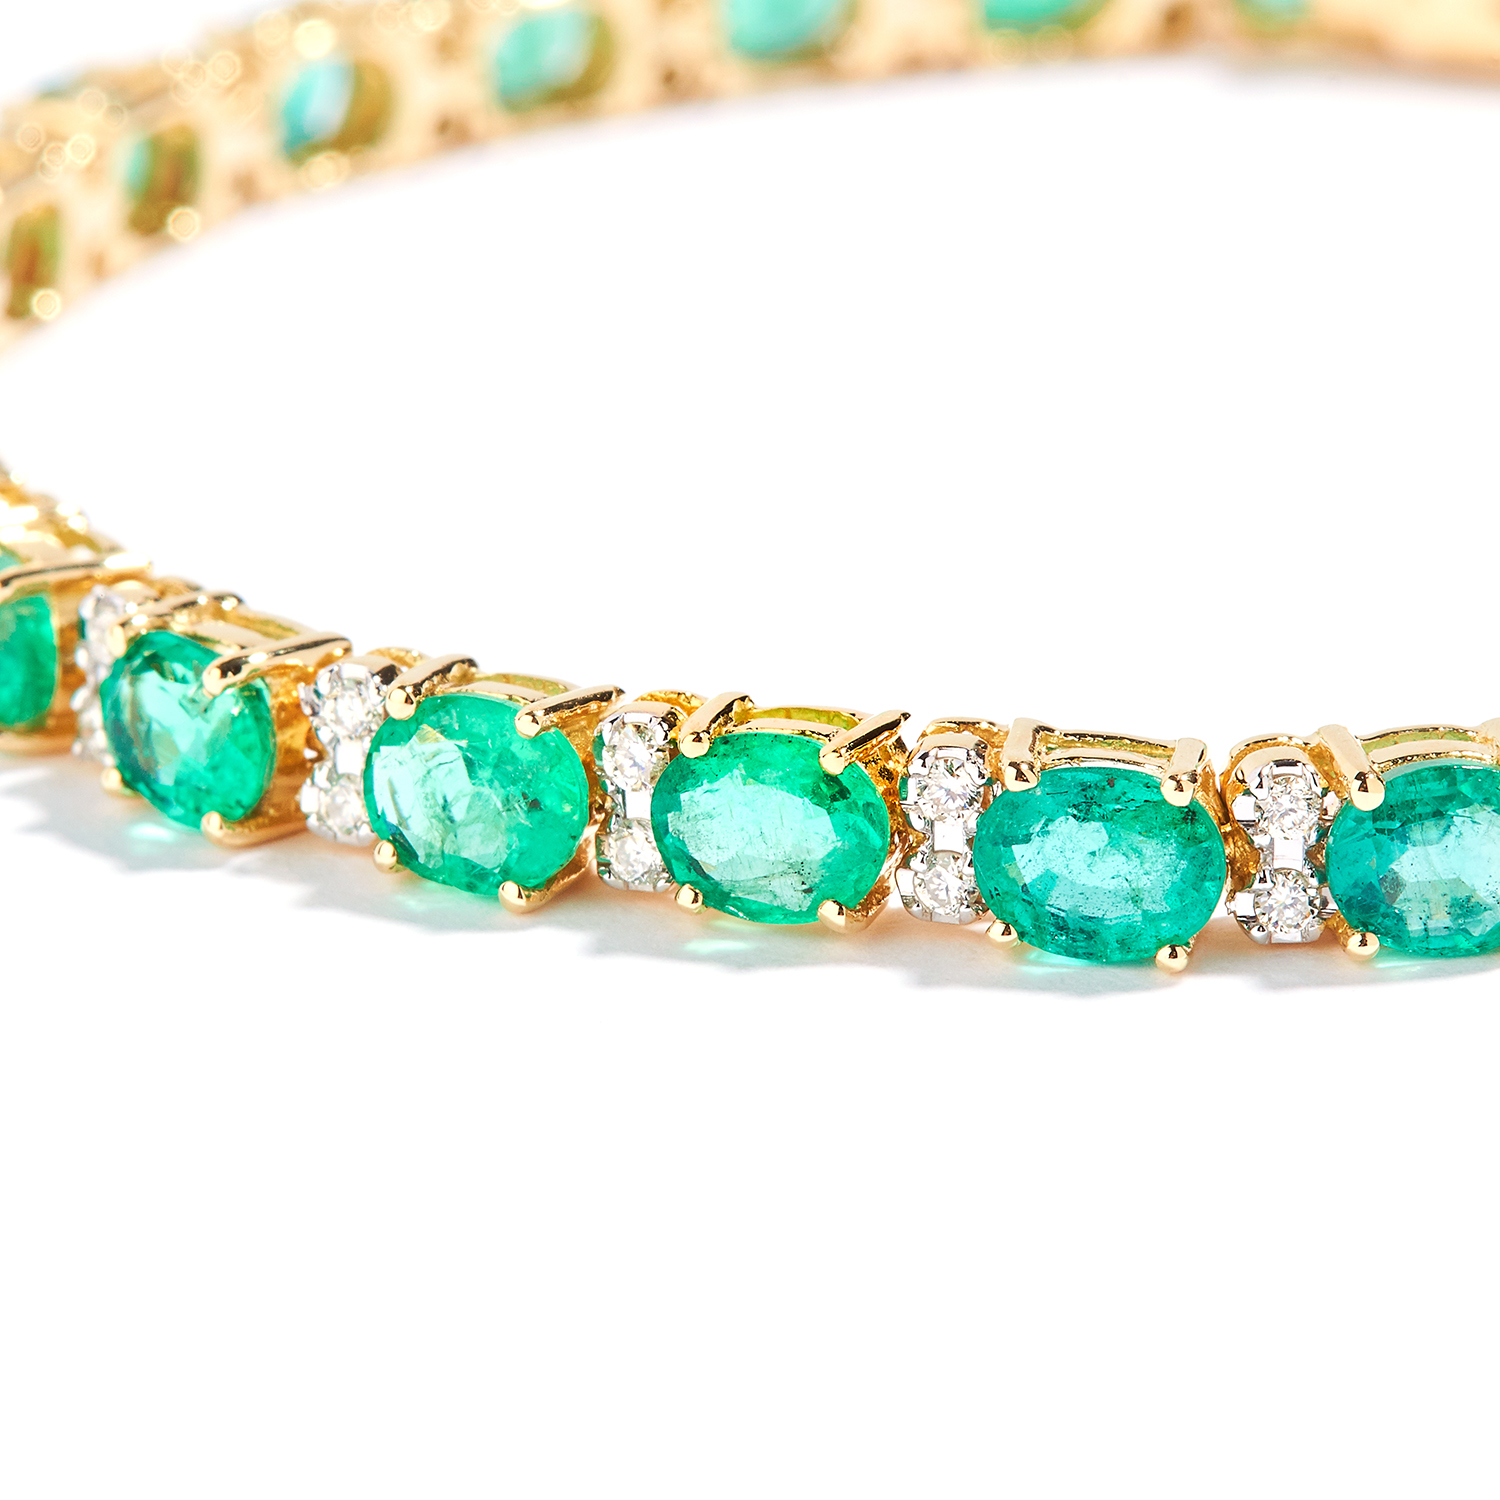 EMERALD AND DIAMOND LINE BRACELET in 18ct yellow gold, set with oval cut emeralds totalling - Bild 2 aus 2